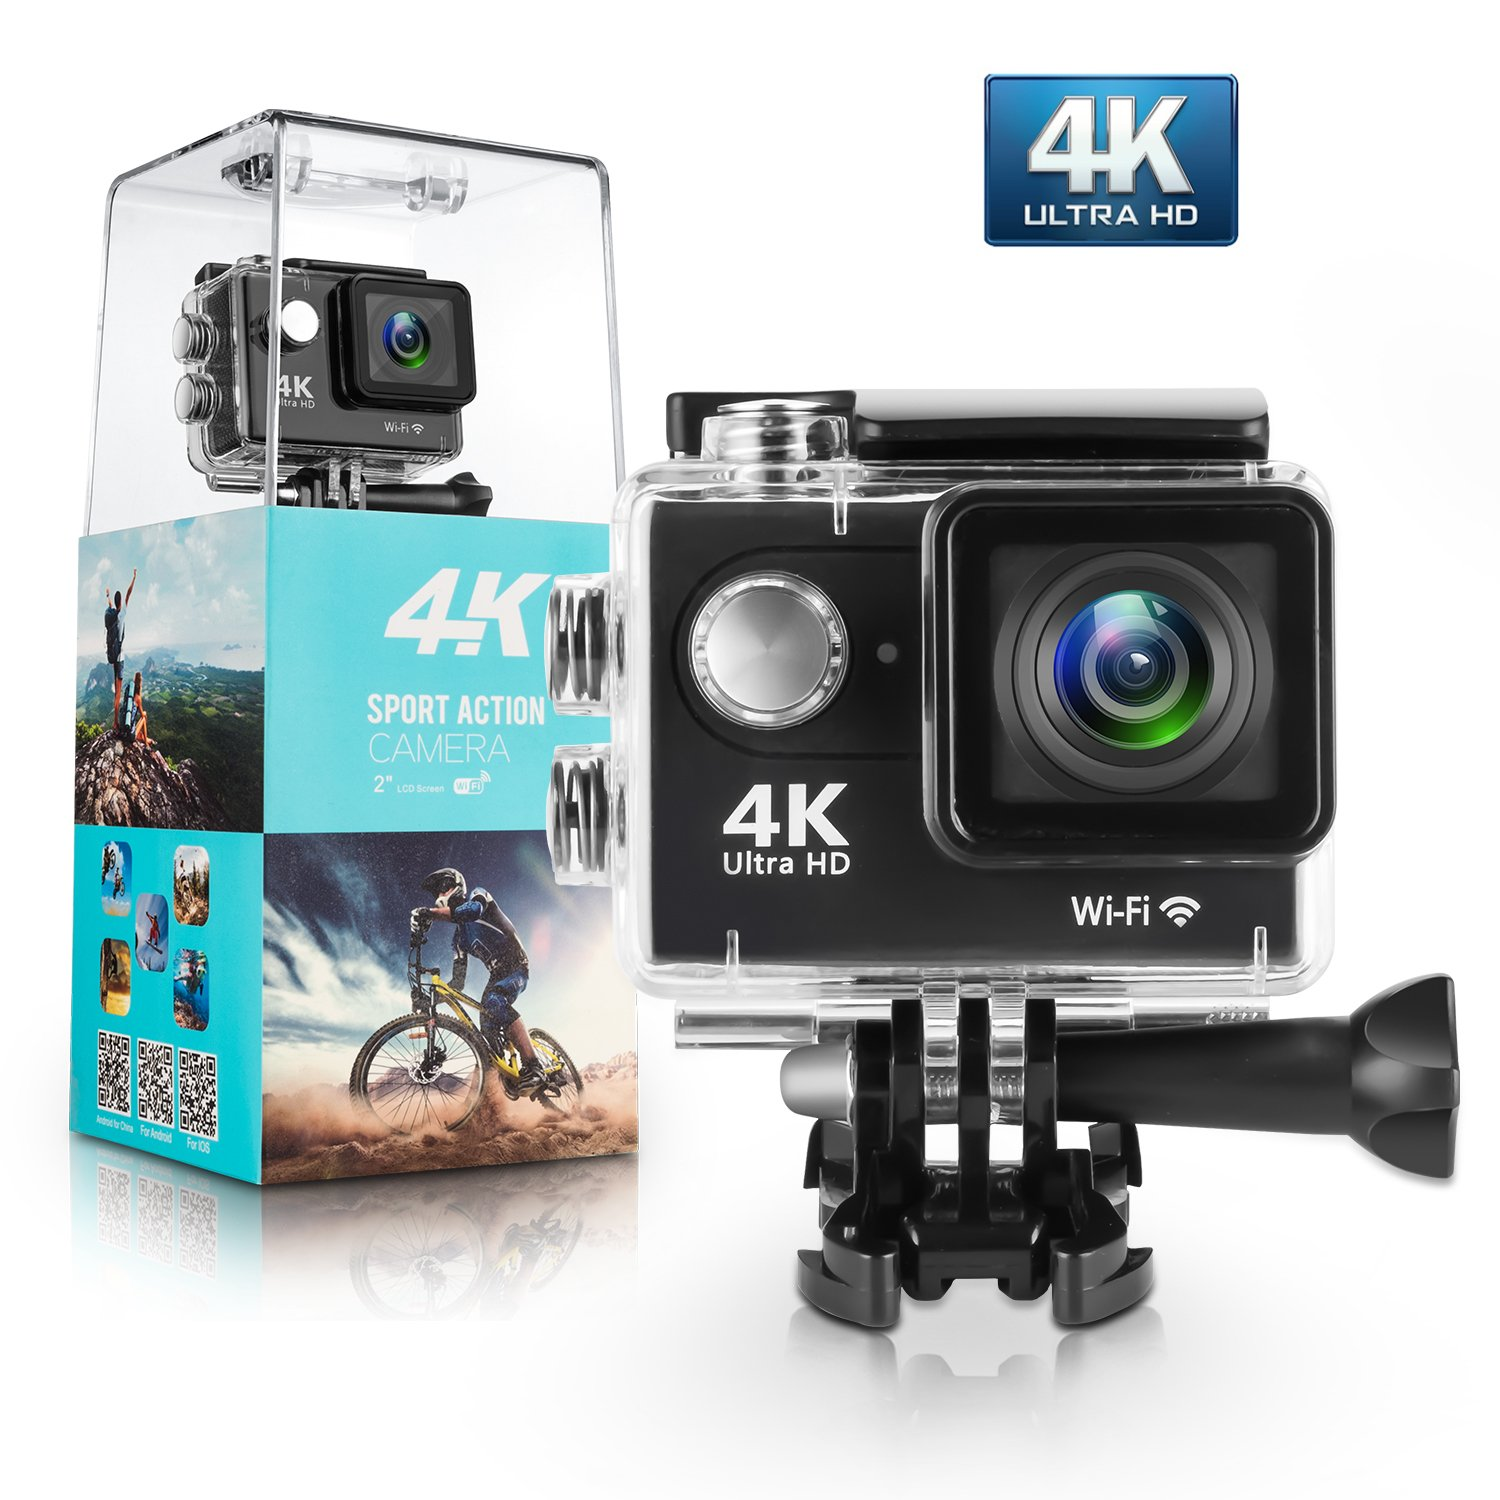 Amazon Action Camera Amuoc M300 4K WiFi Ultra HD Waterproof Sport Camera with 2 Inch LCD Screen 12MP 170 Degree Wide Angle Lens Including 100Ft